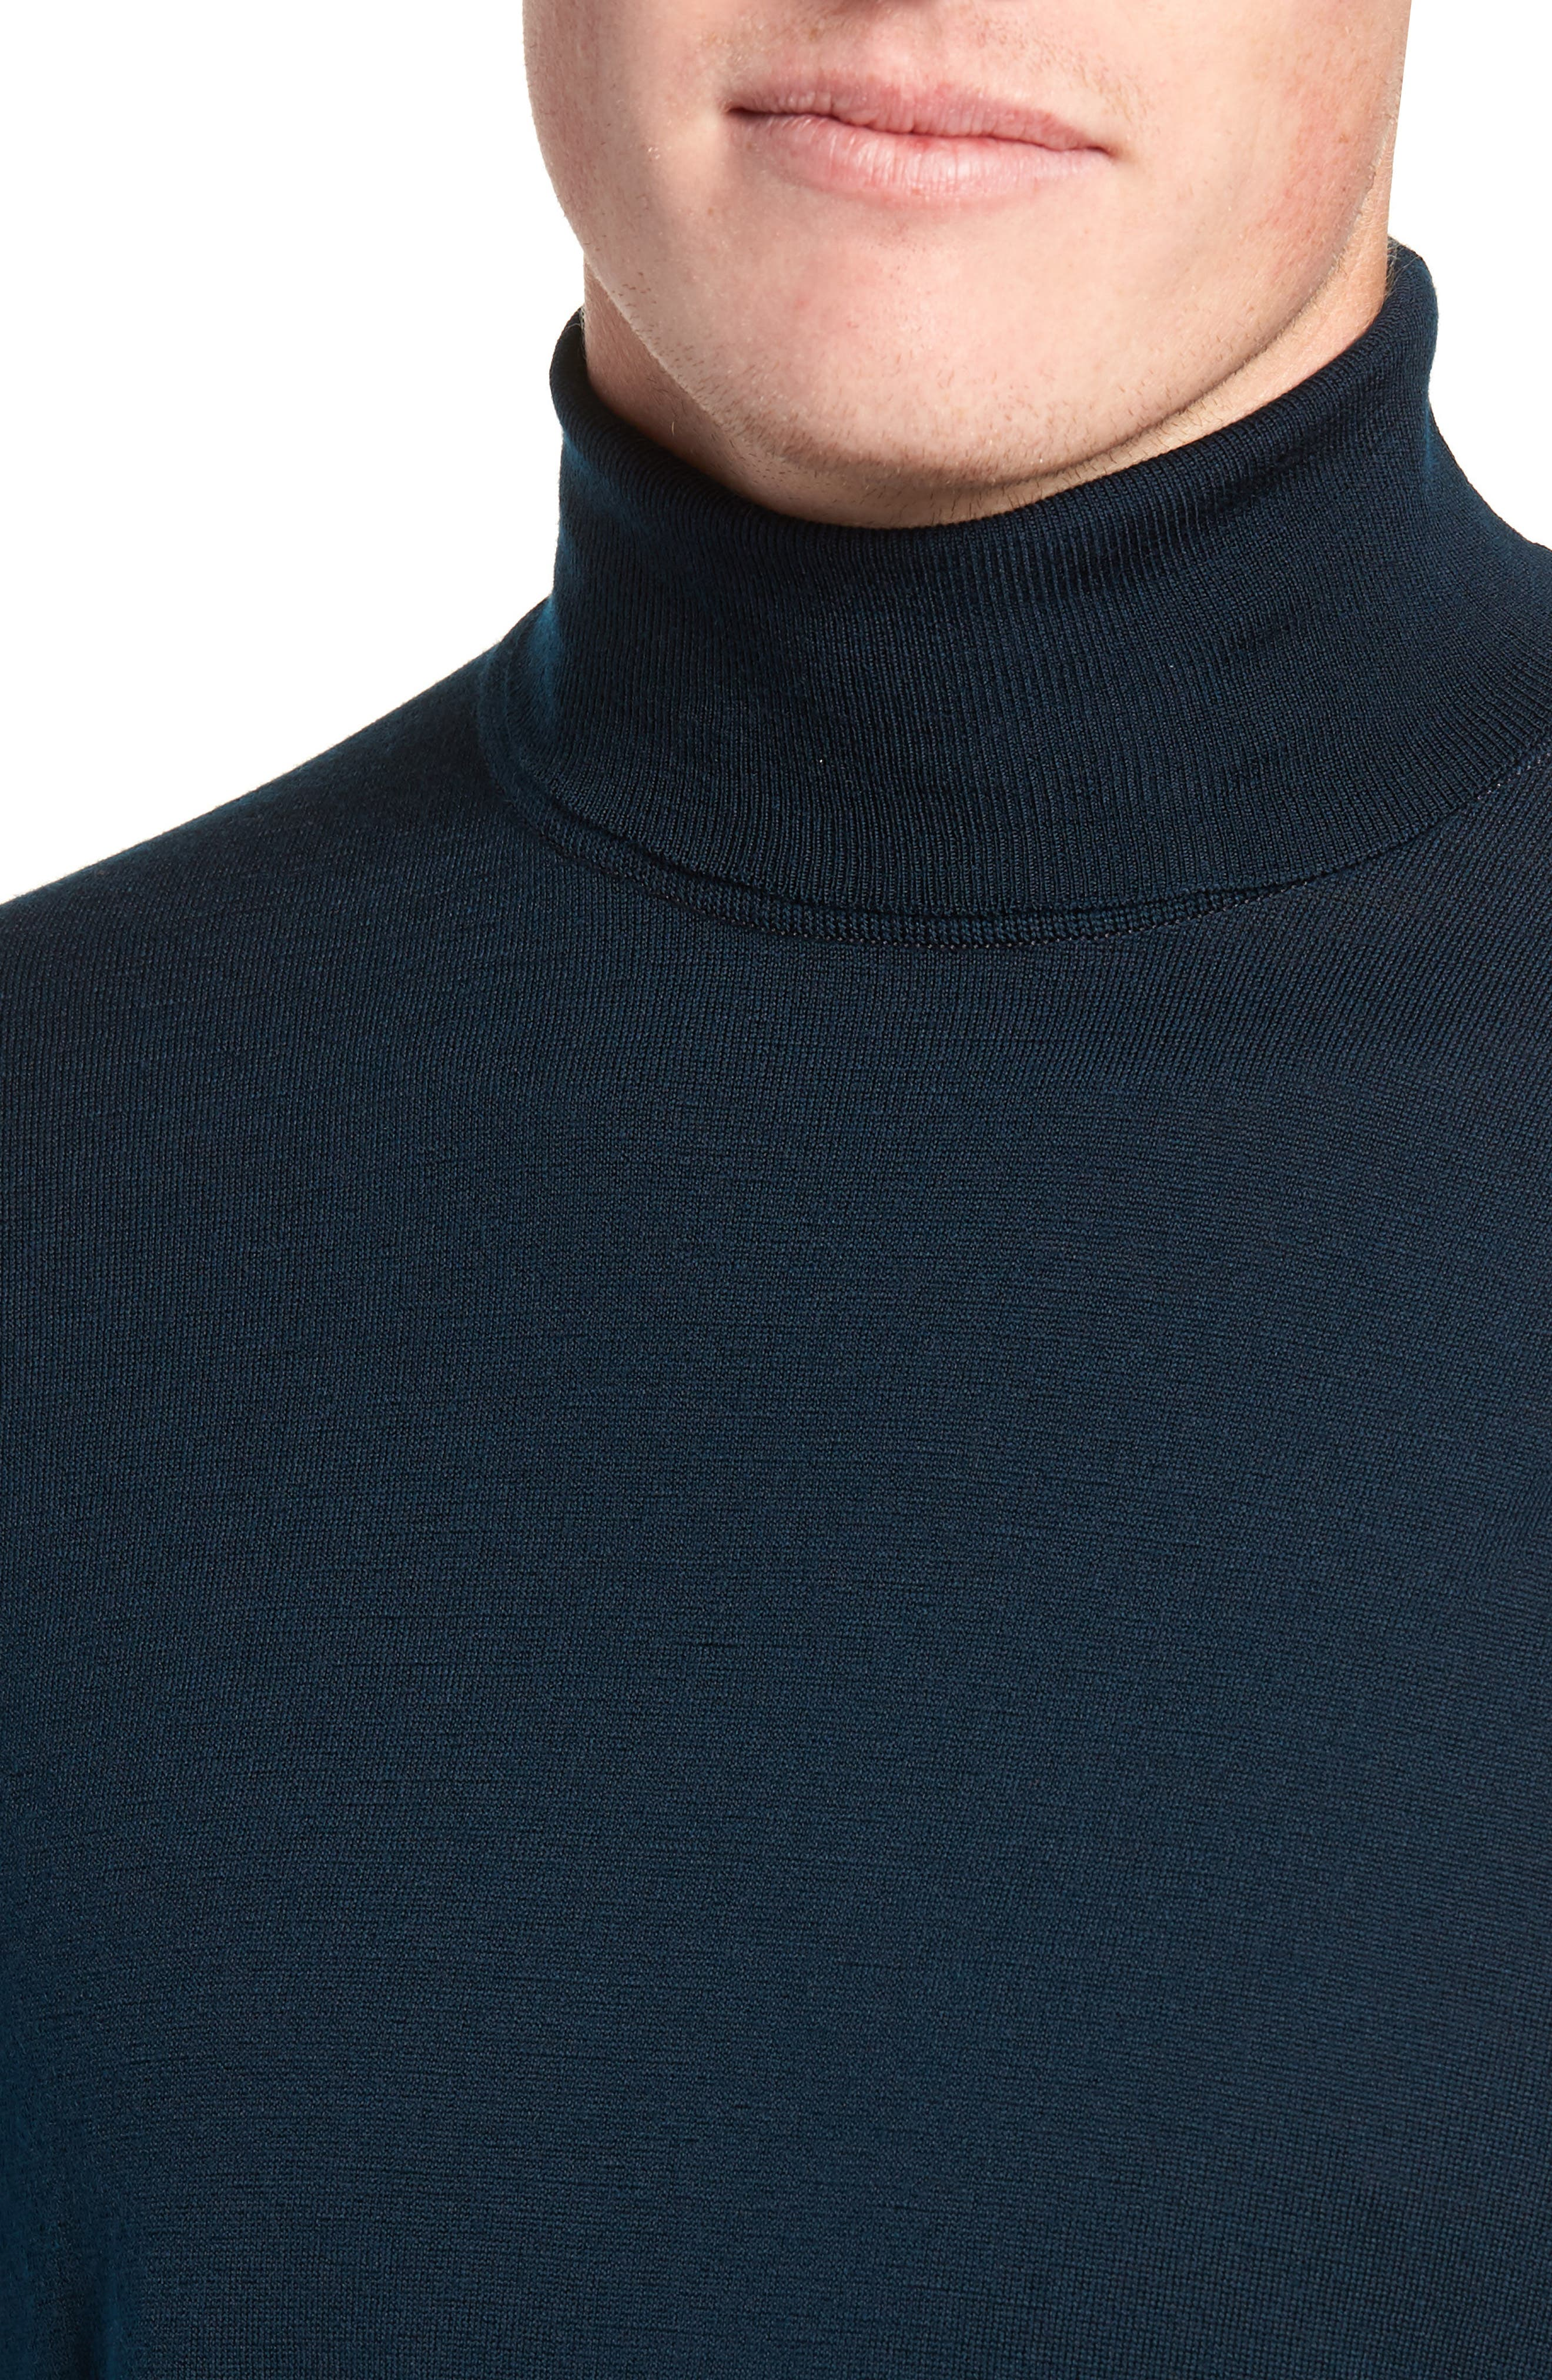 'Richards' Easy Fit Turtleneck Wool Sweater,                             Alternate thumbnail 27, color,